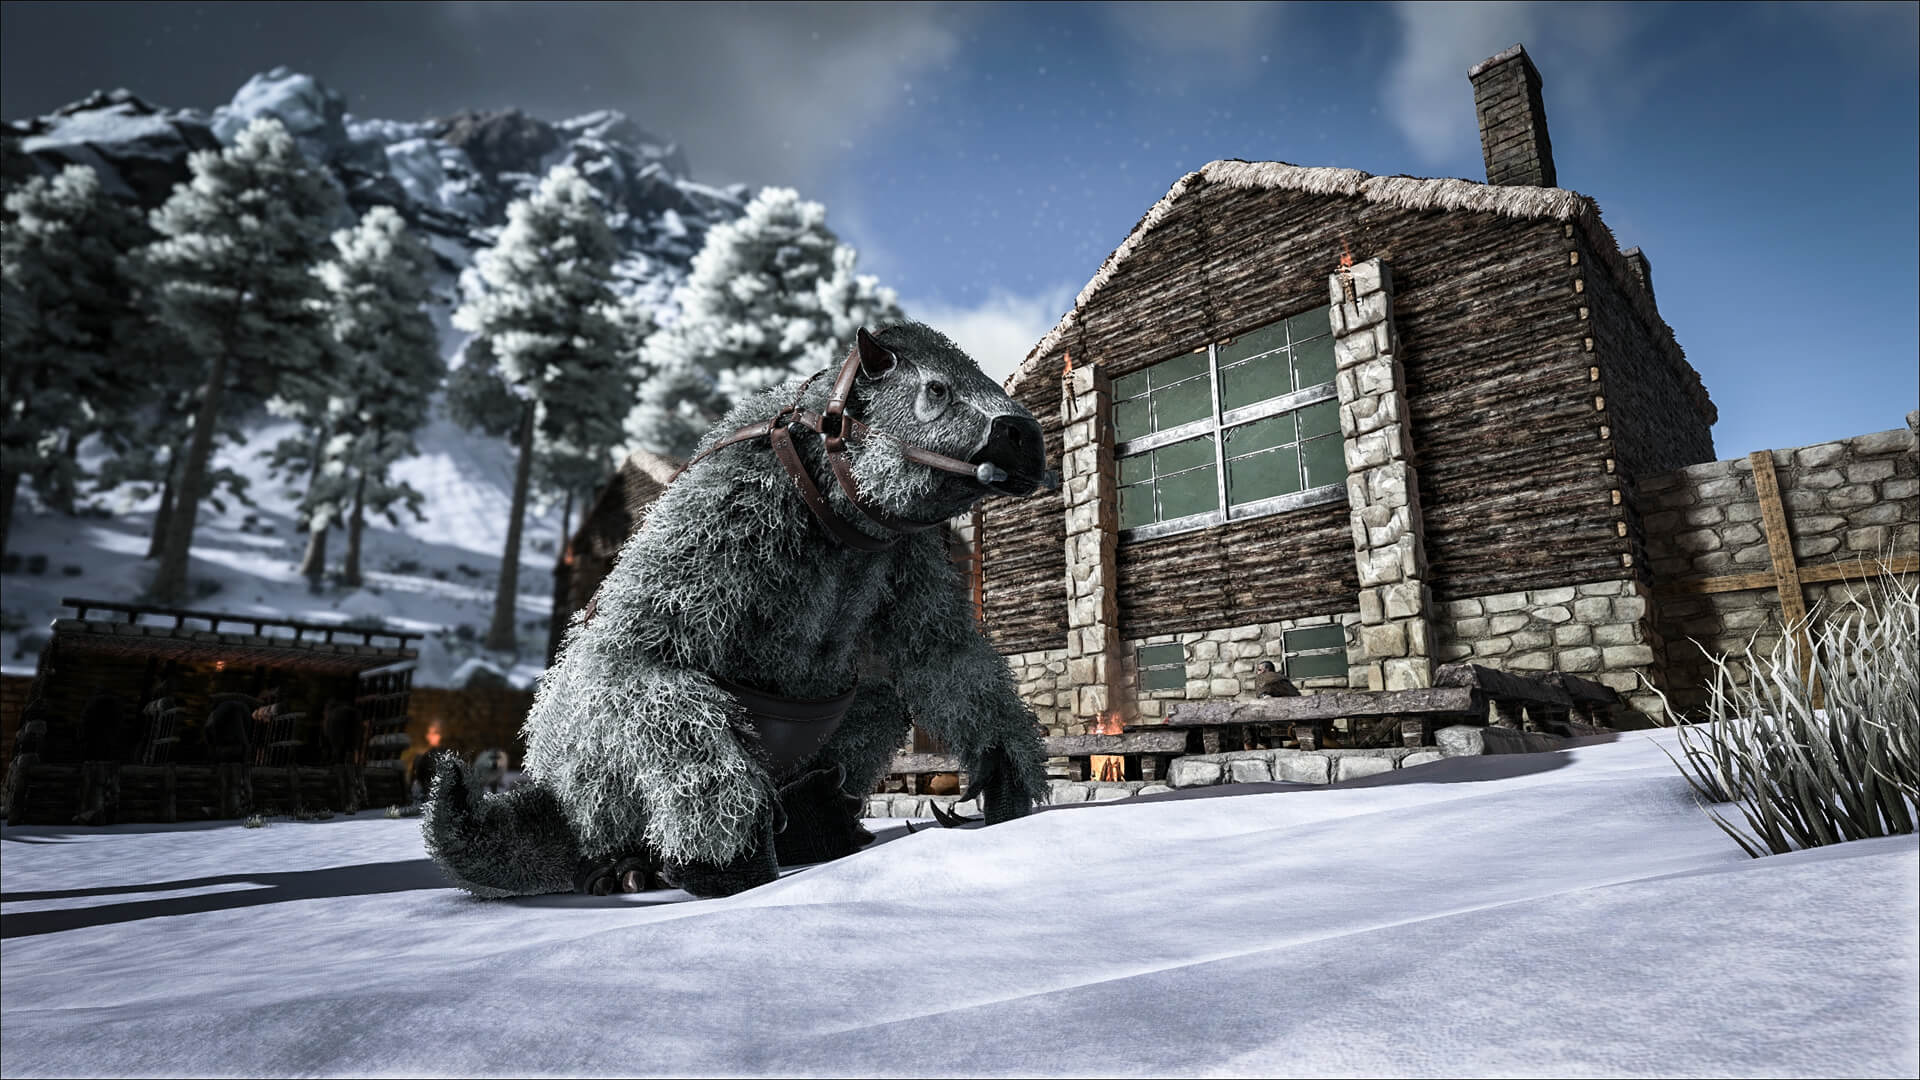 Мегатерий ARK Survival Evolved